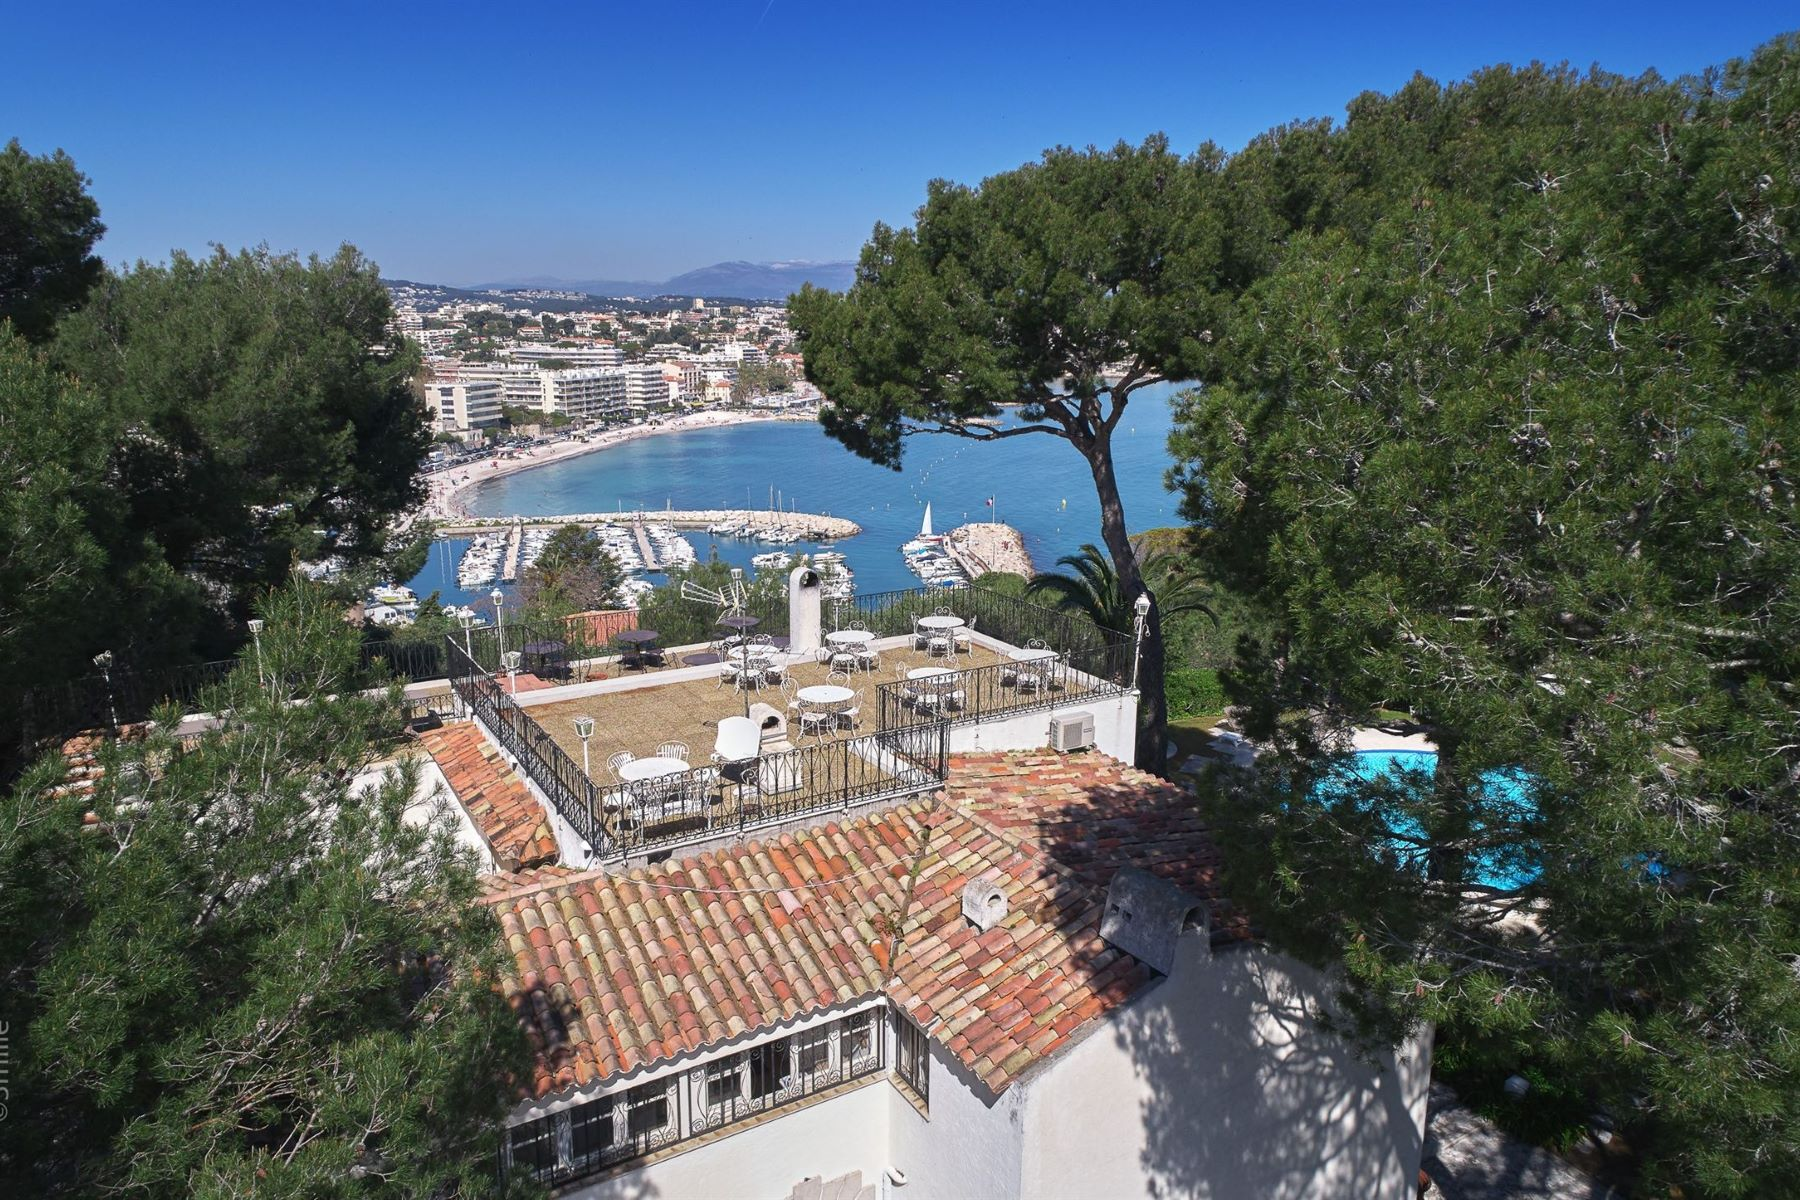 Single Family Homes for Sale at Villa with a renovation project - sea views - Cap d'Antibes Cap D'Antibes, Provence-Alpes-Cote D'Azur 06160 France